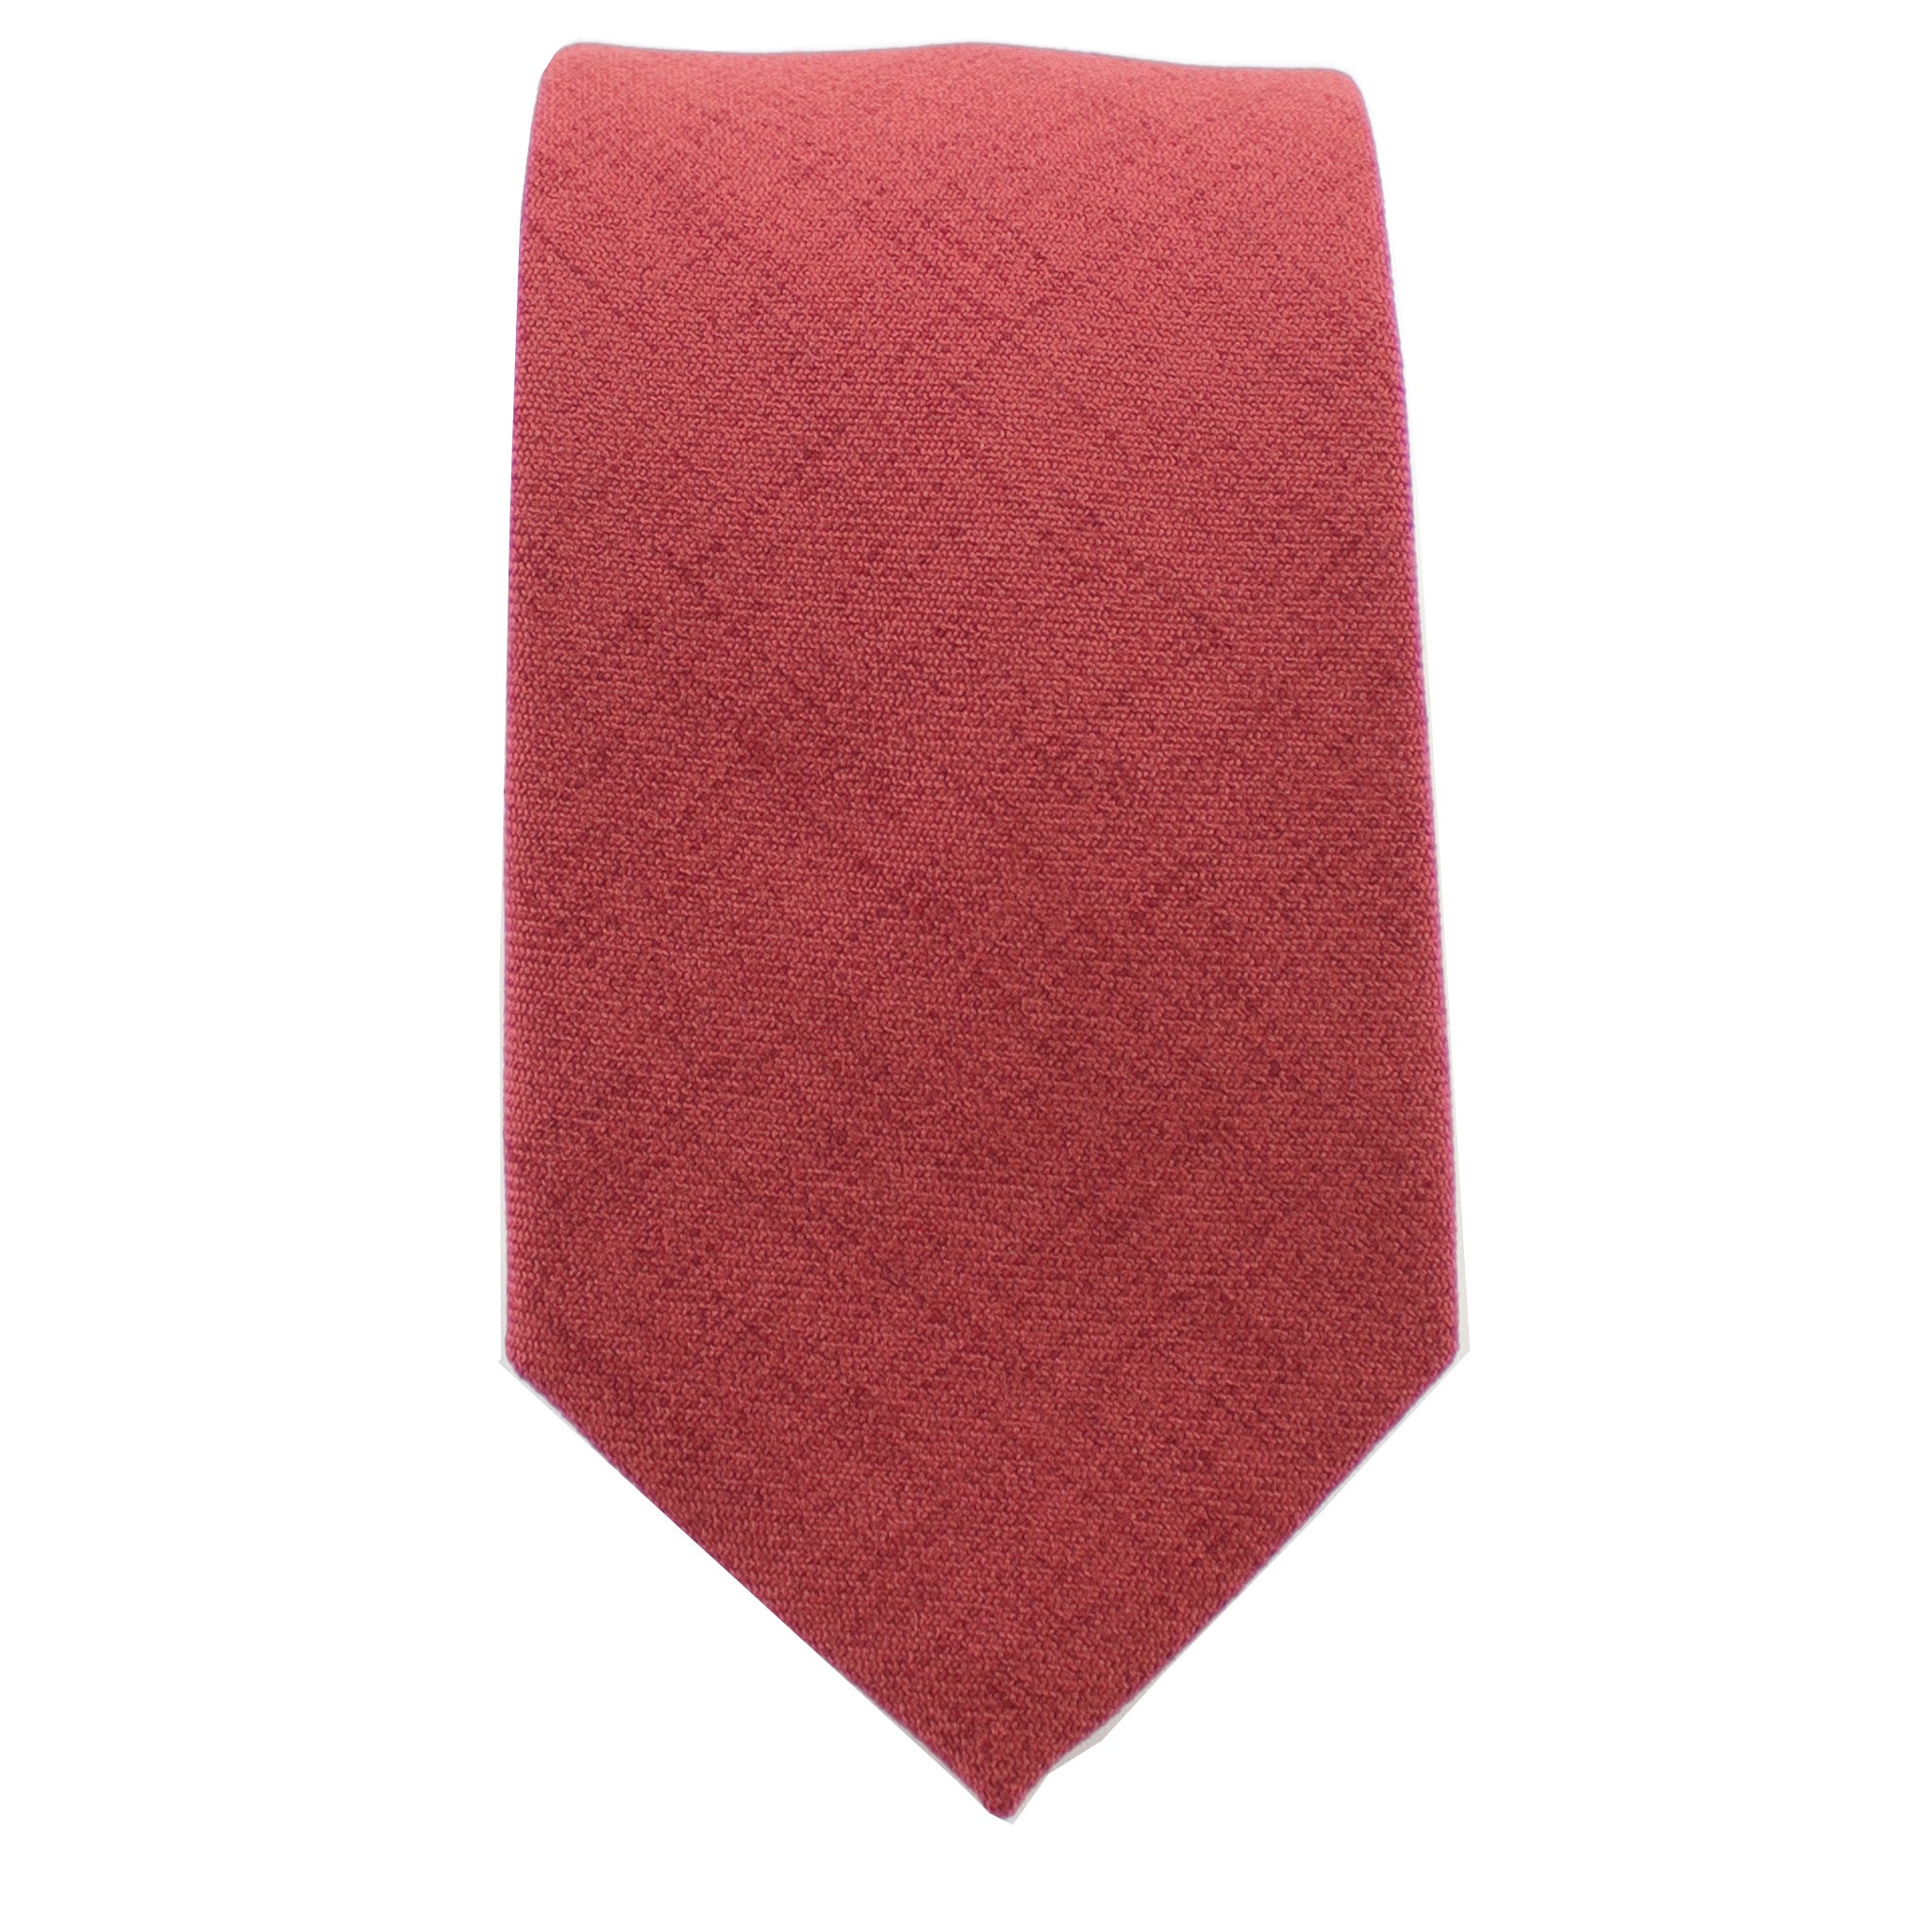 Cotton Burnt Orange Tie from DIBI